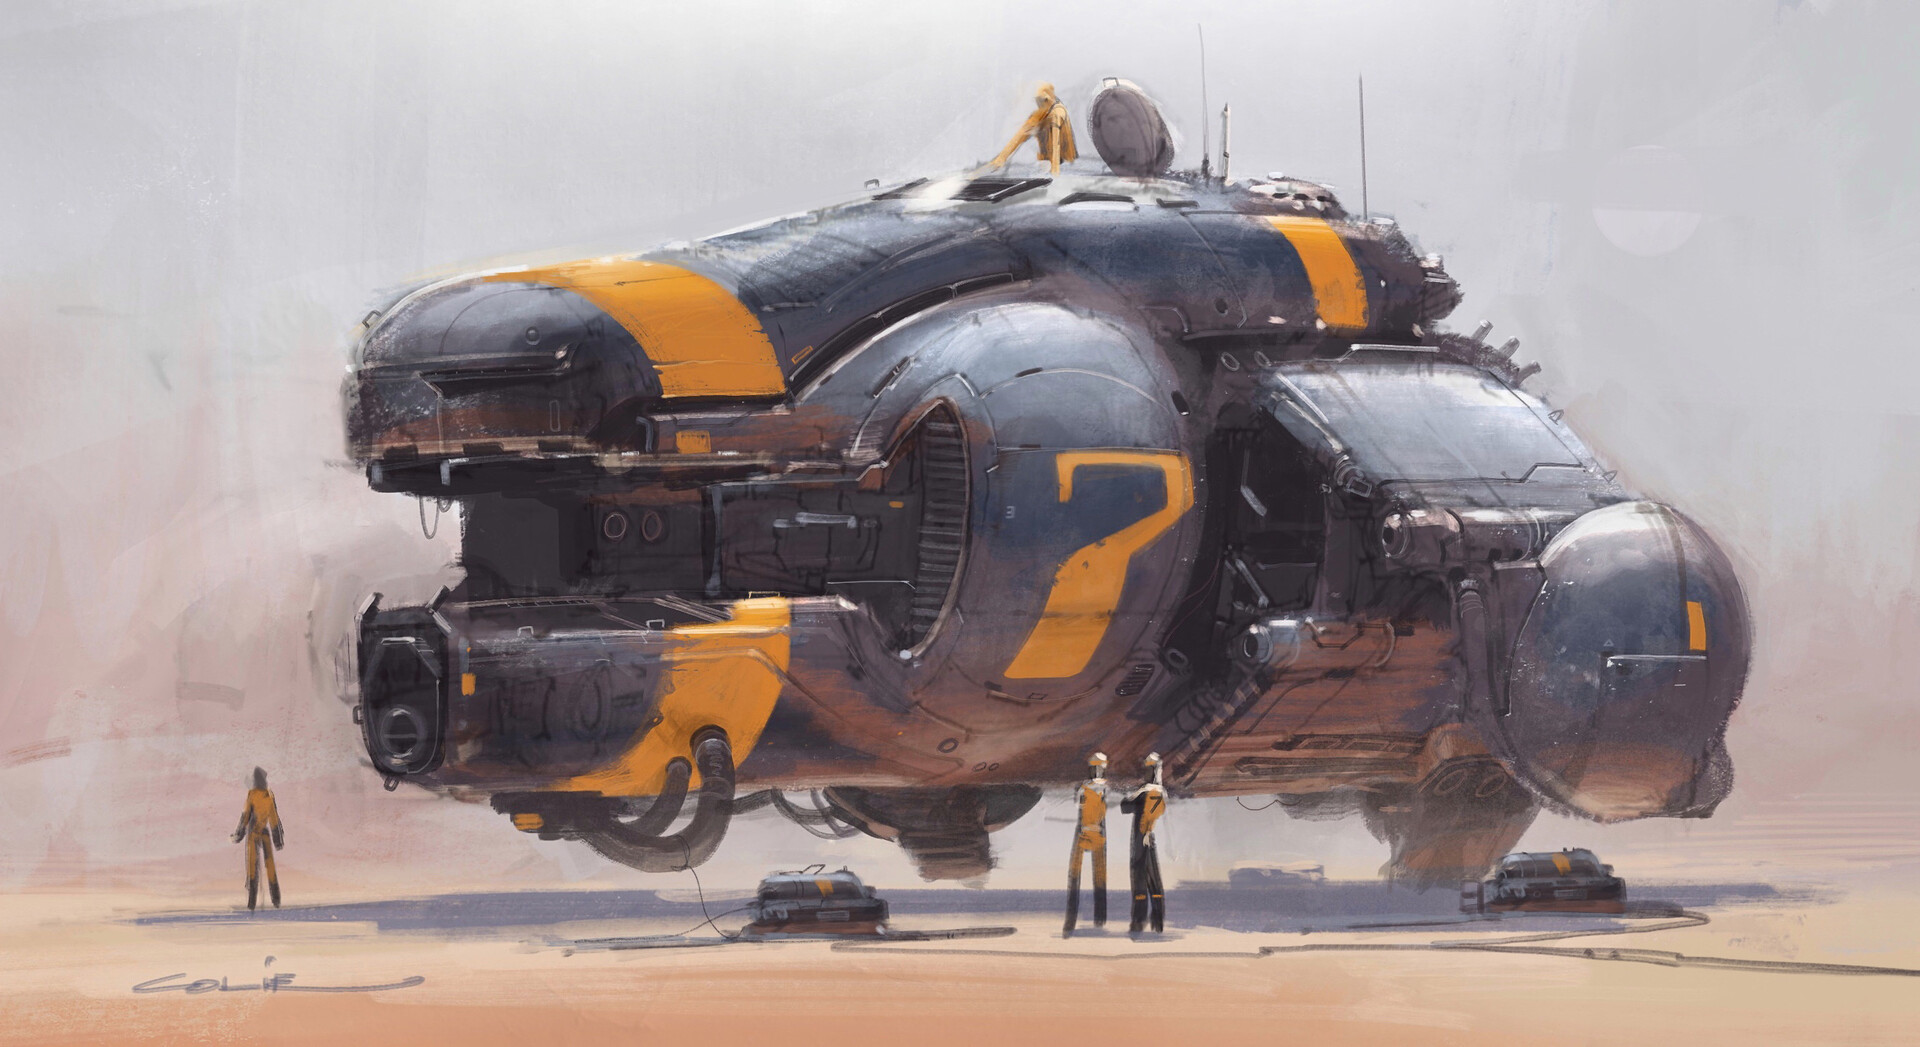 Sci-Fi Craft & Vehicles by Colie Wertz